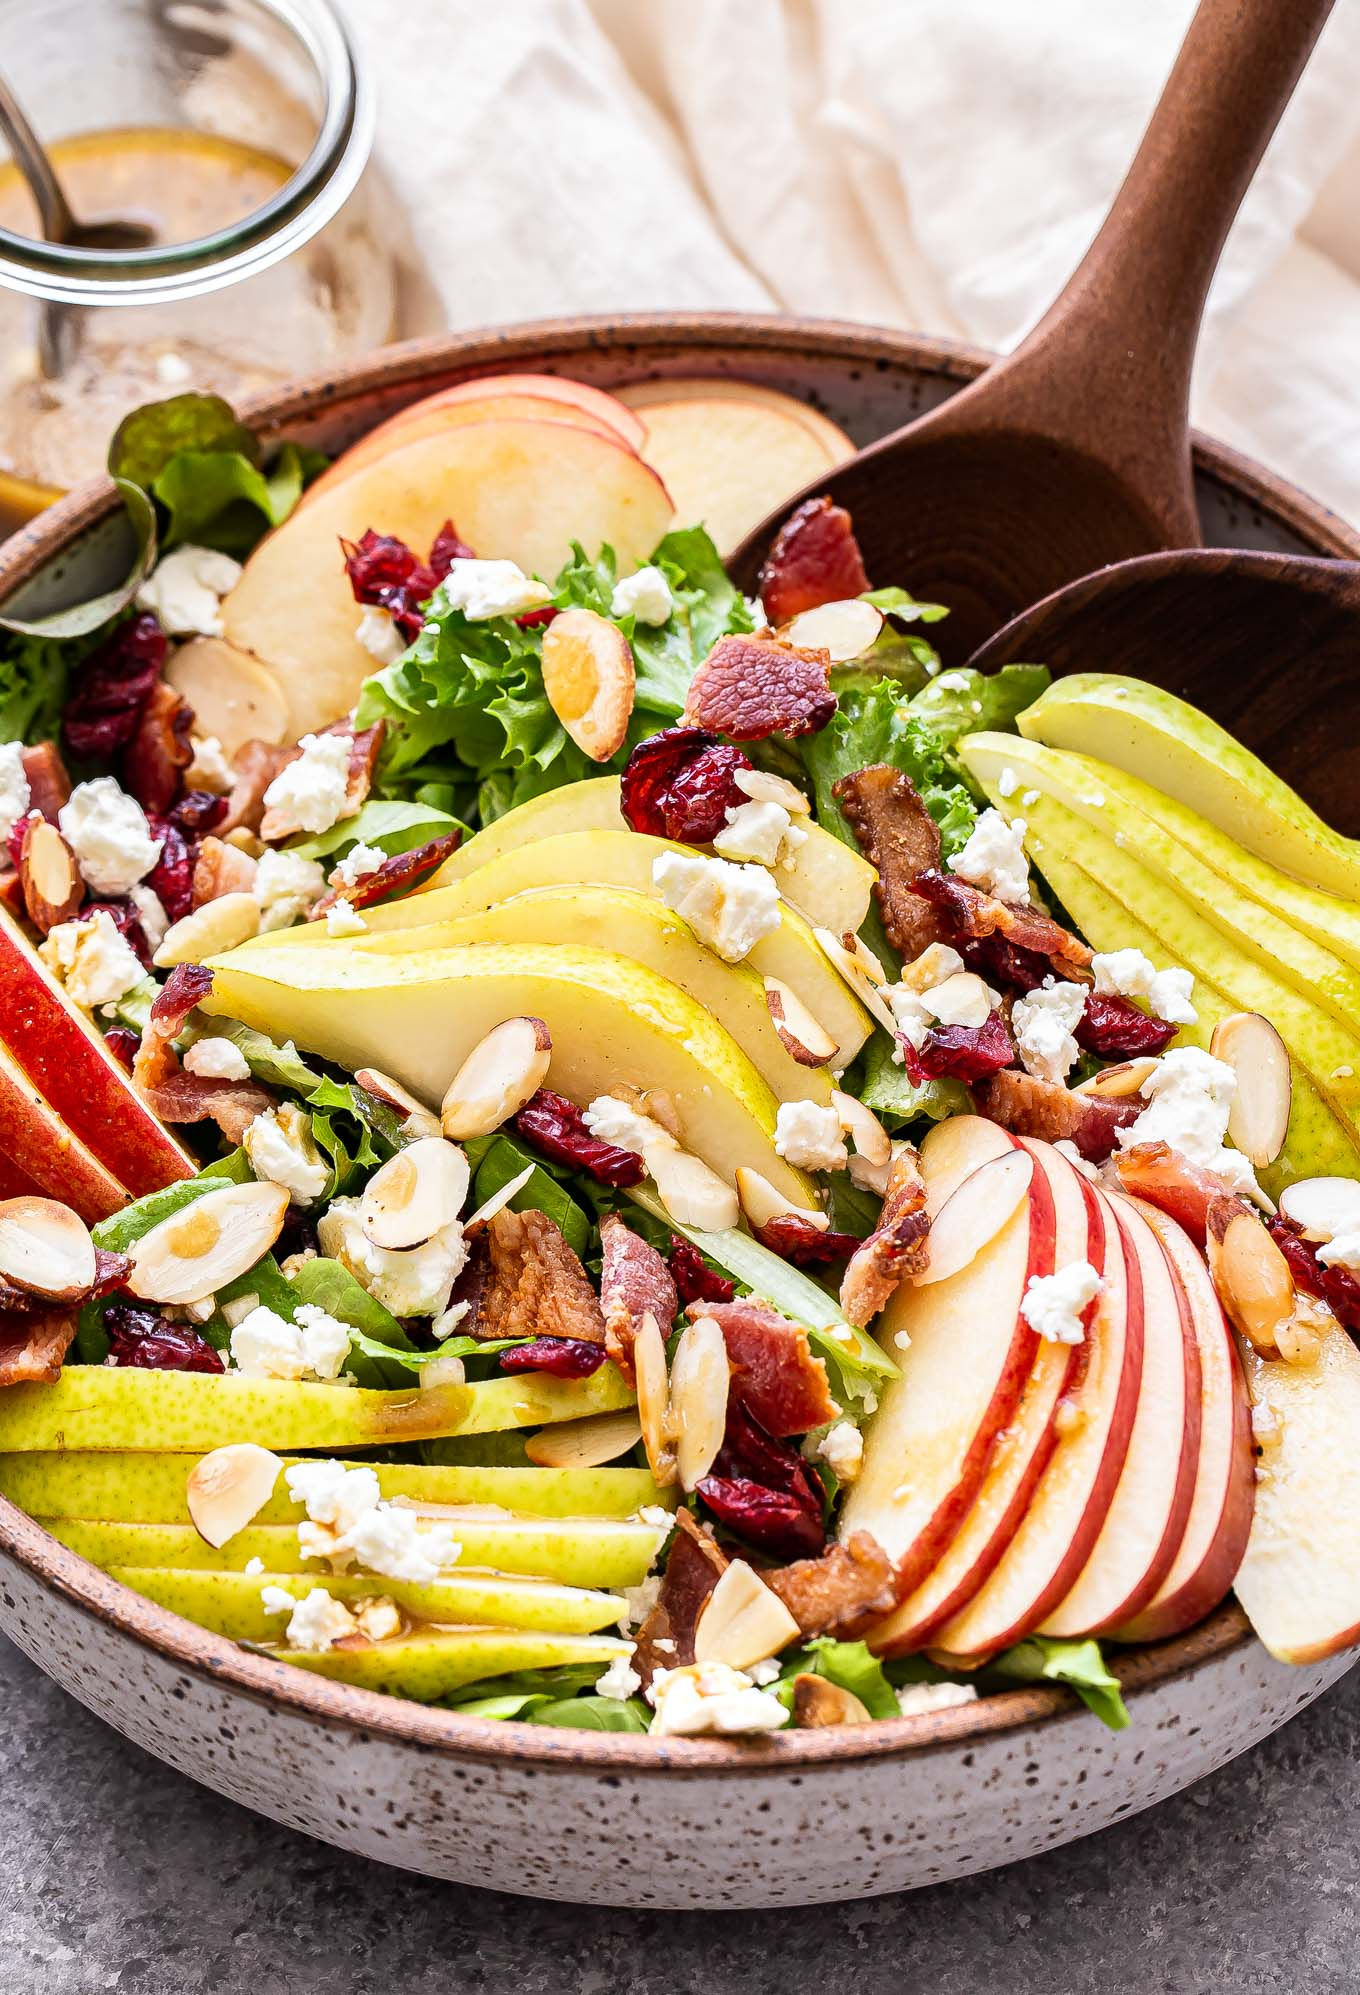 Autumn Apple and Pear Salad in a white serving bowl with wooden spoons